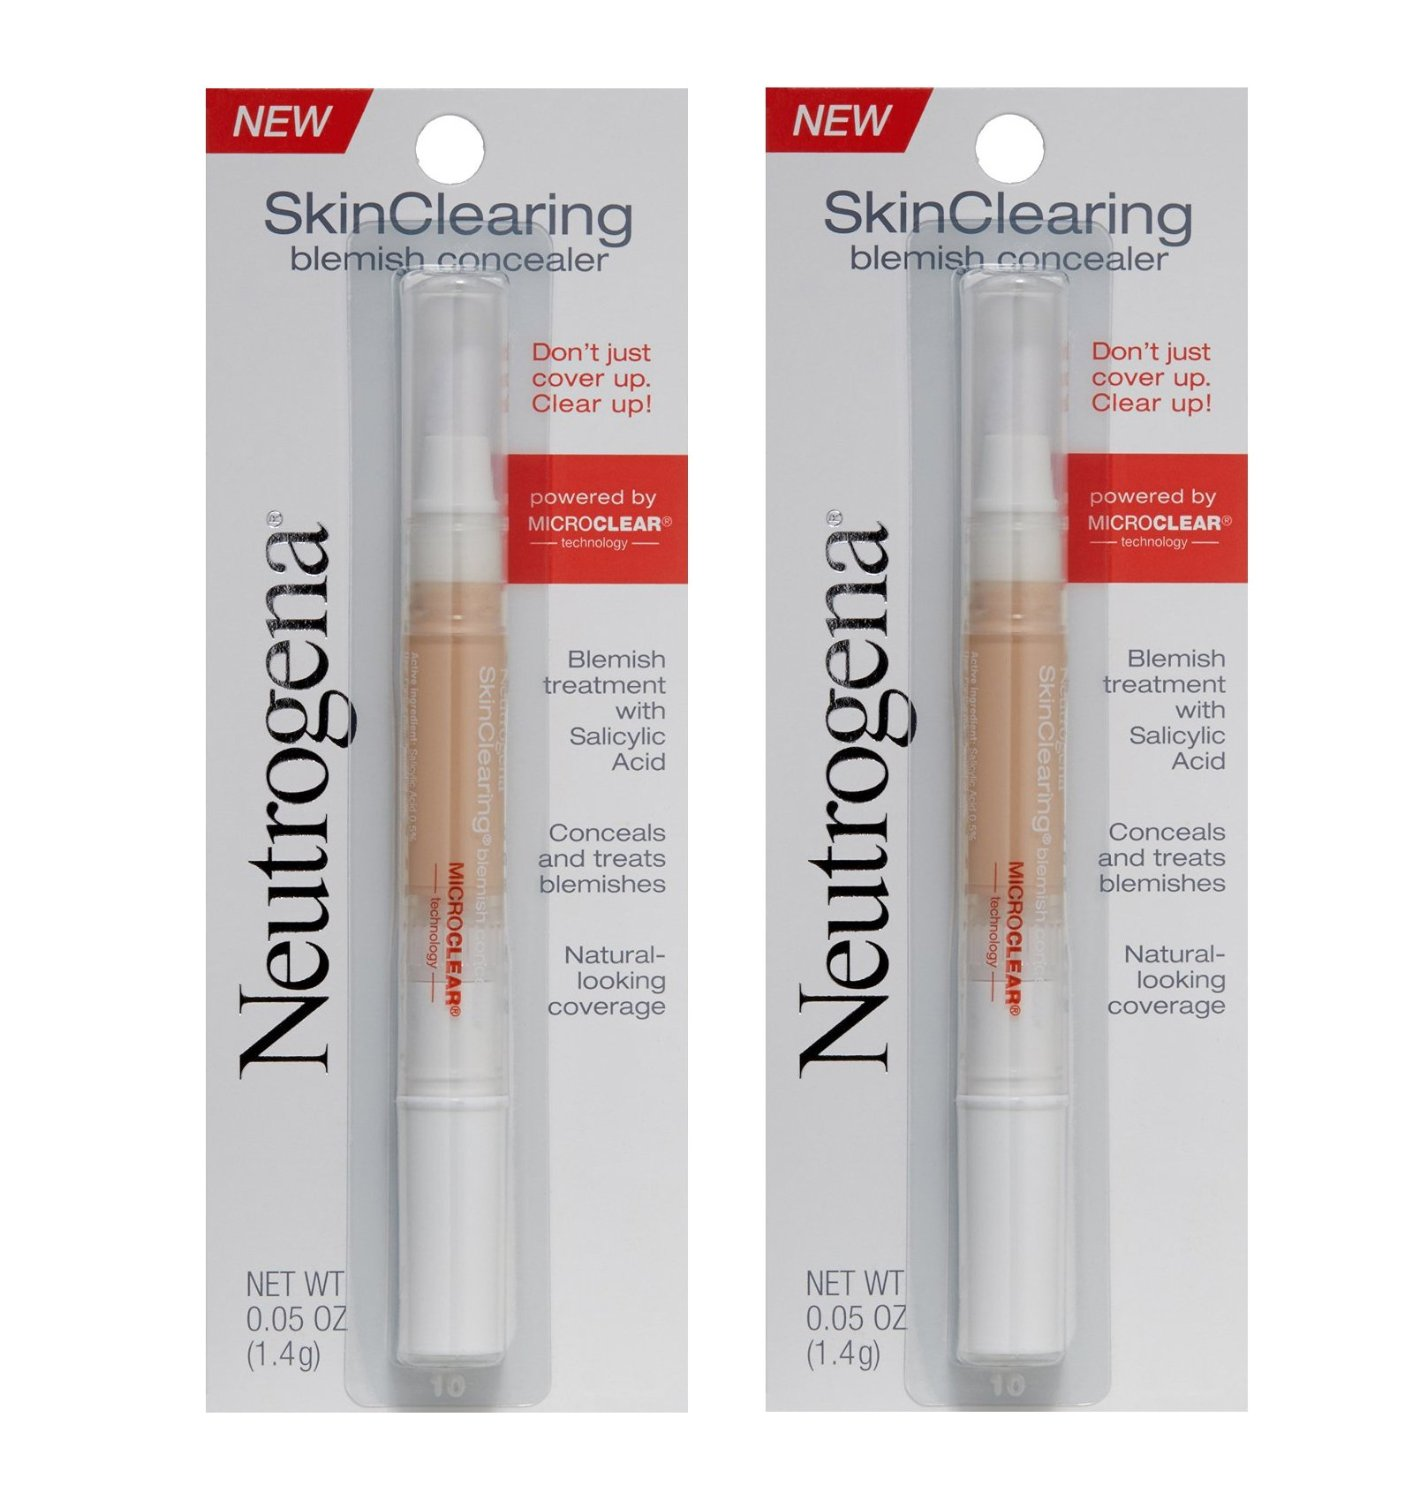 The best drugstore concealer for acne comes from Neutrogena